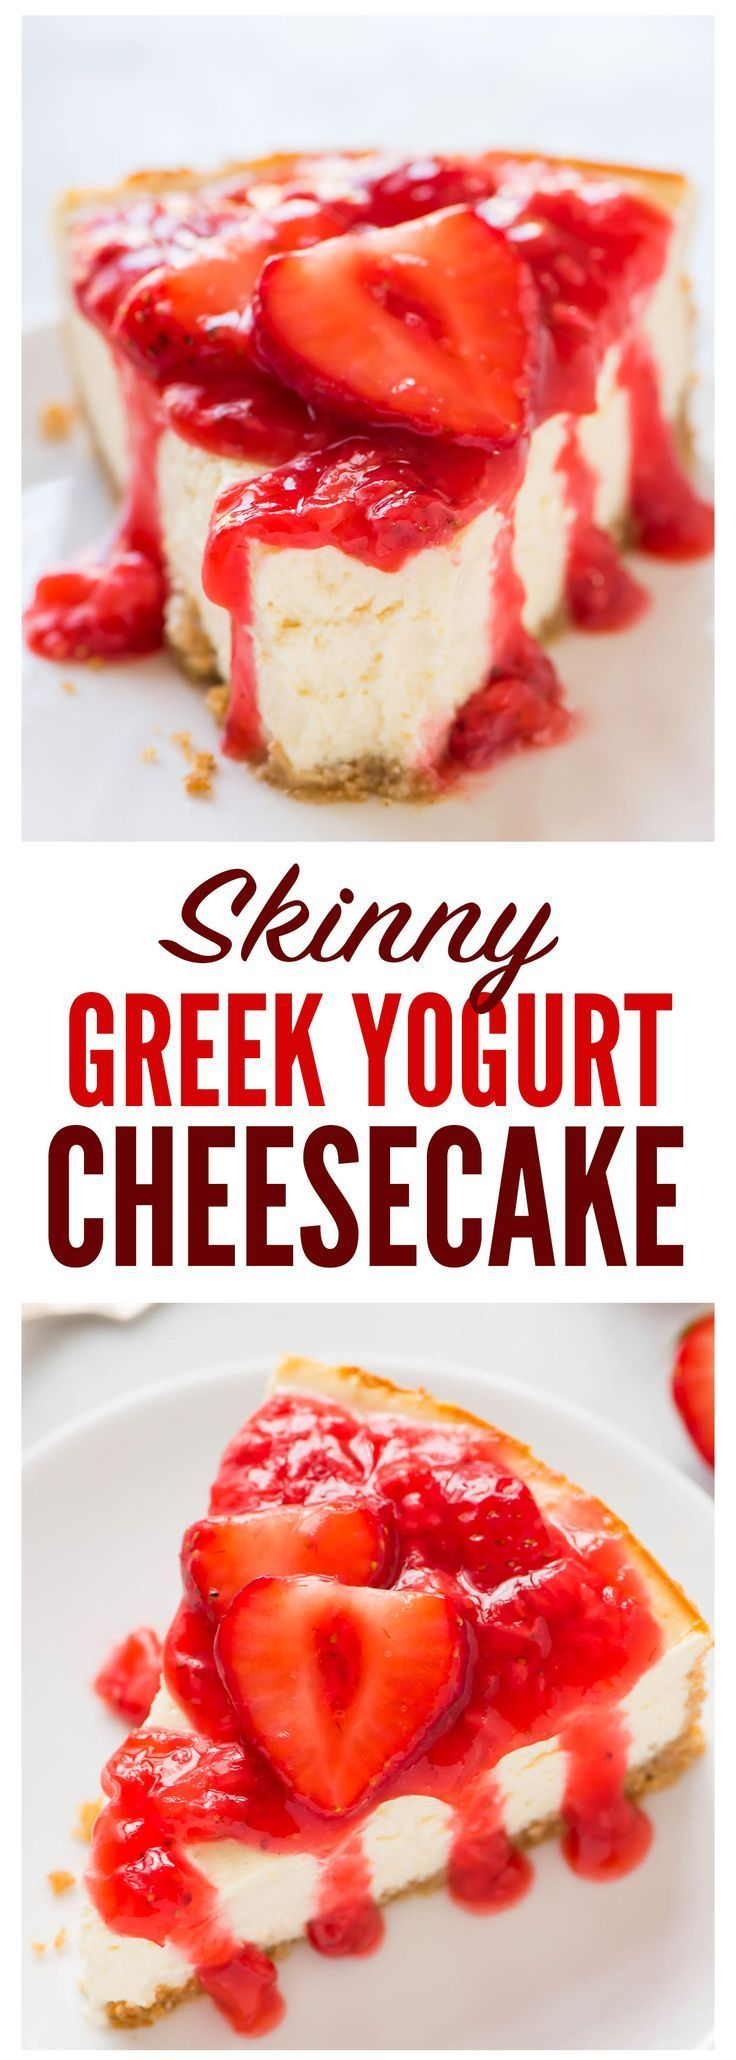 An easy, lightened-up recipe for Greek Yogurt Cheesecake with fresh strawberry sauce and buttery graham cracker crust. Creamy, fluffy, and the perfect dessert for any occasion!